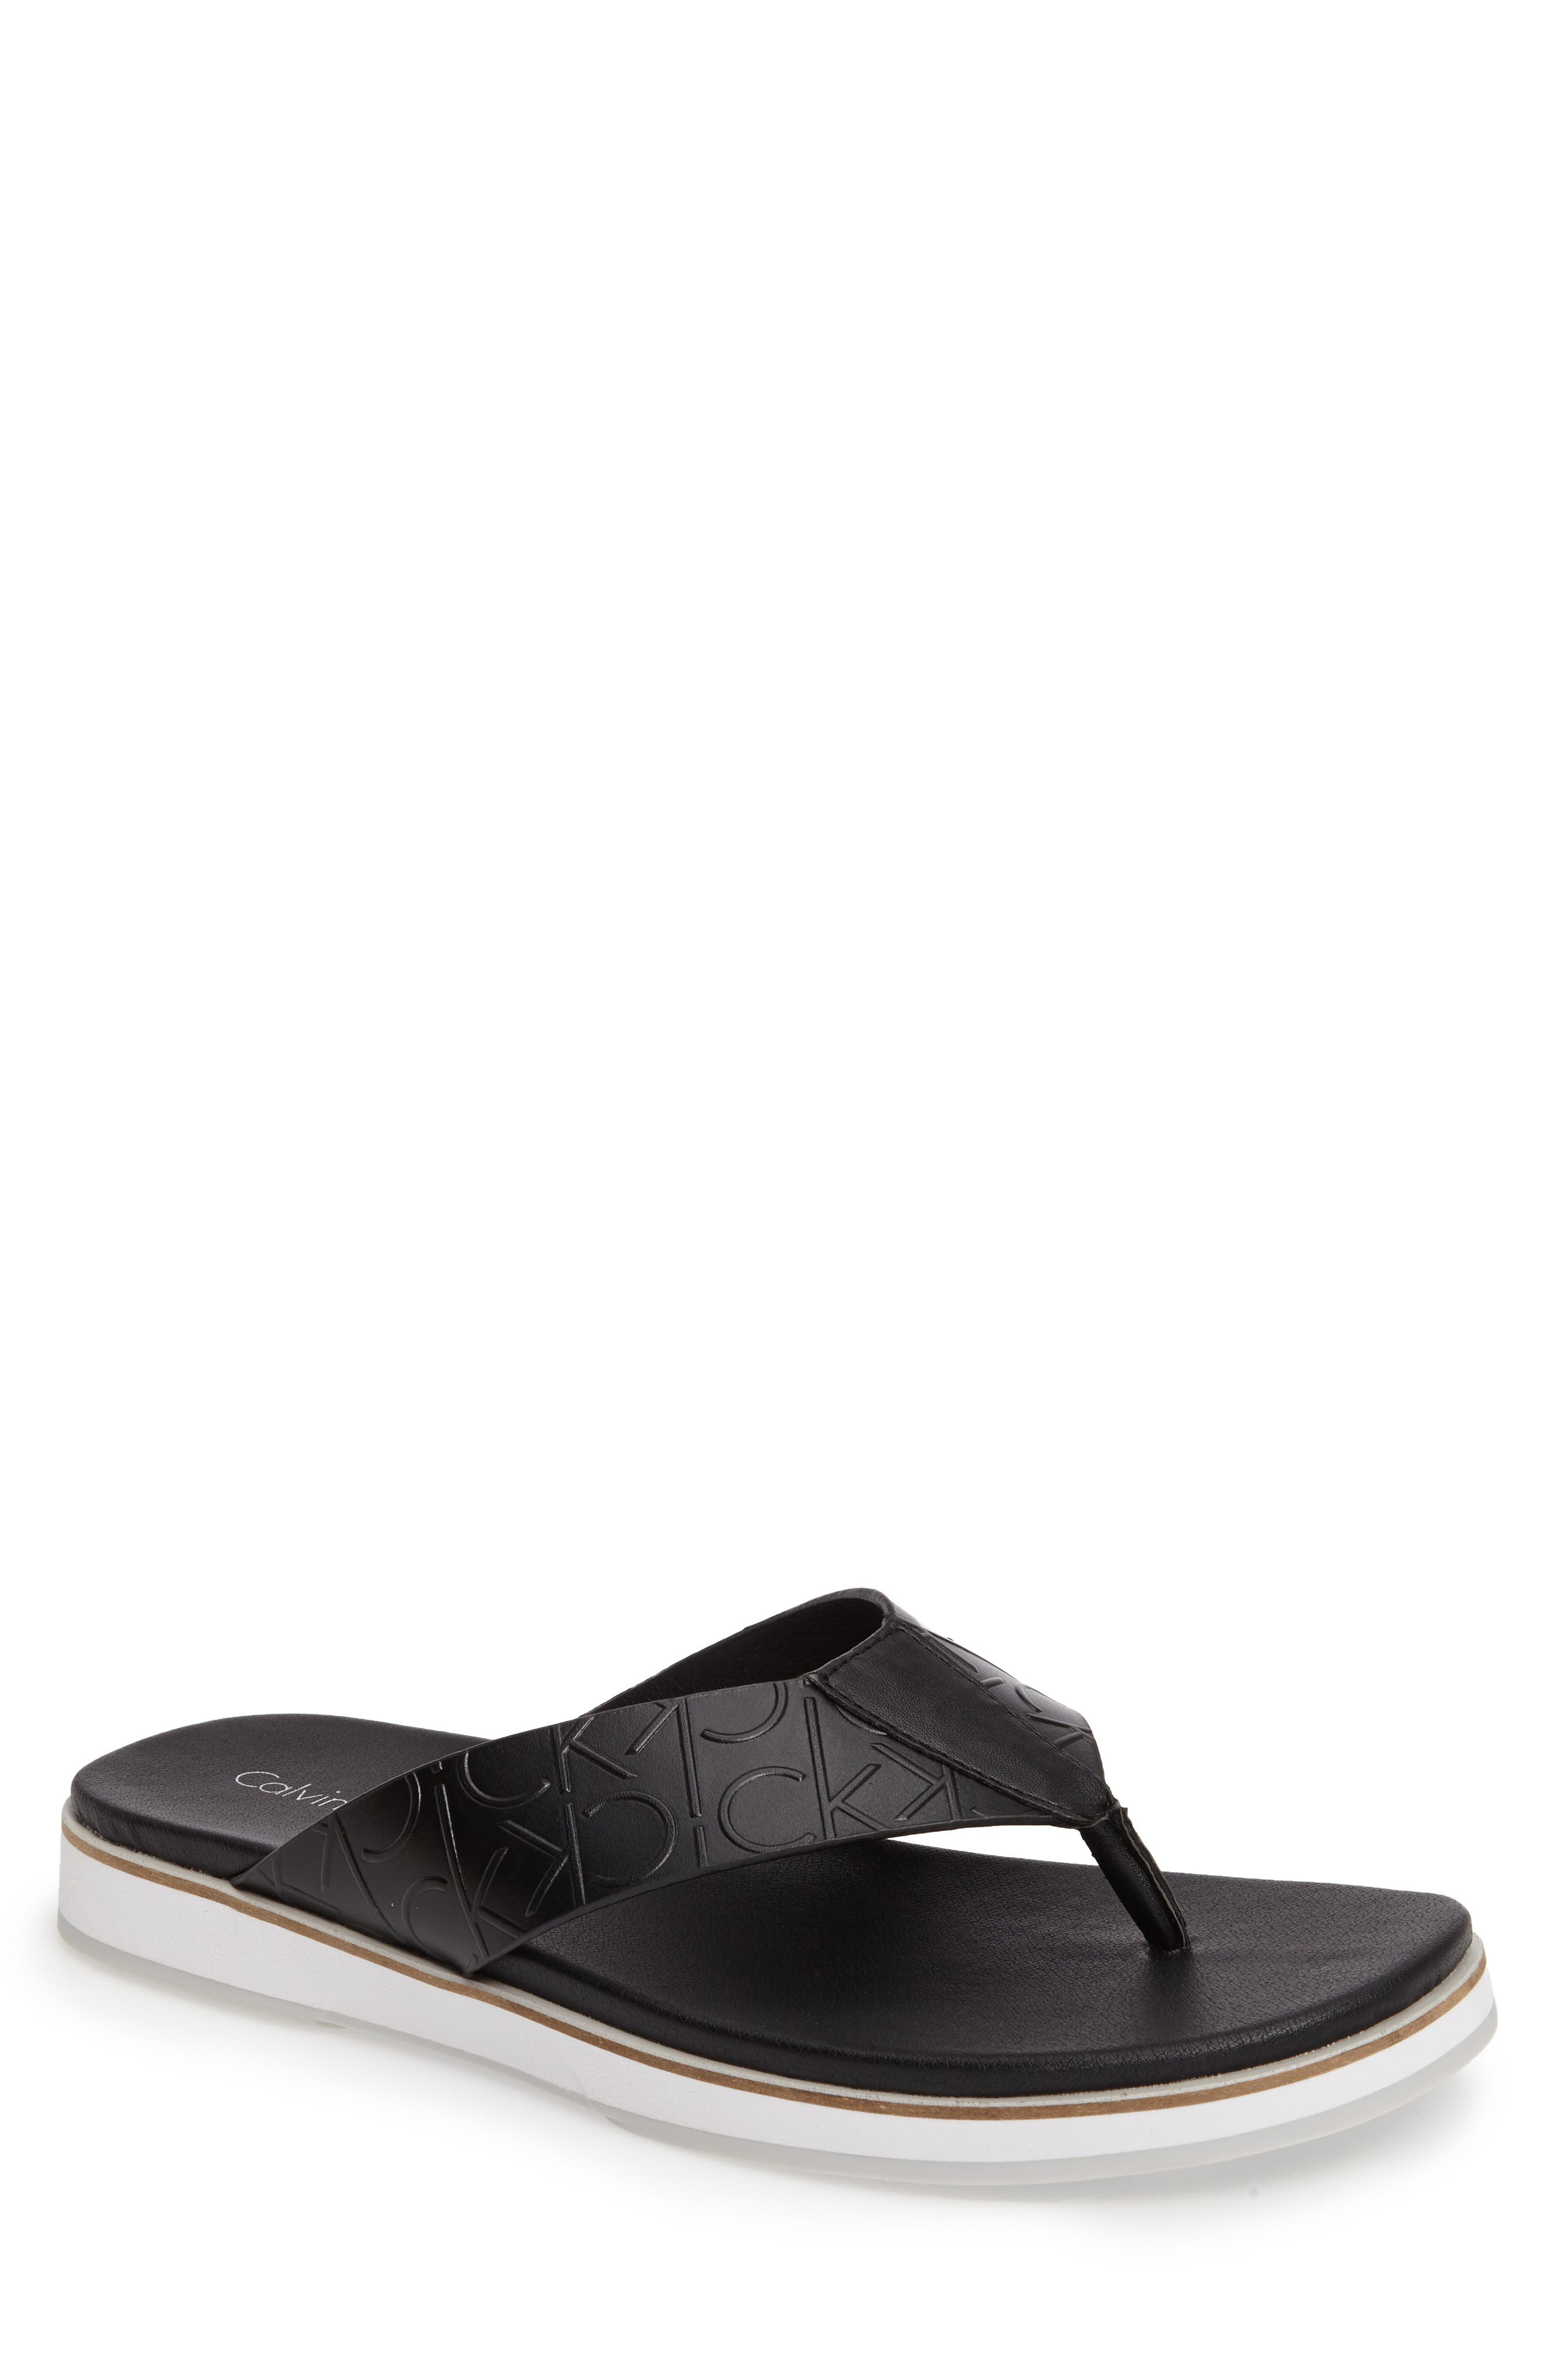 Deano Flip Flop,                         Main,                         color, 006